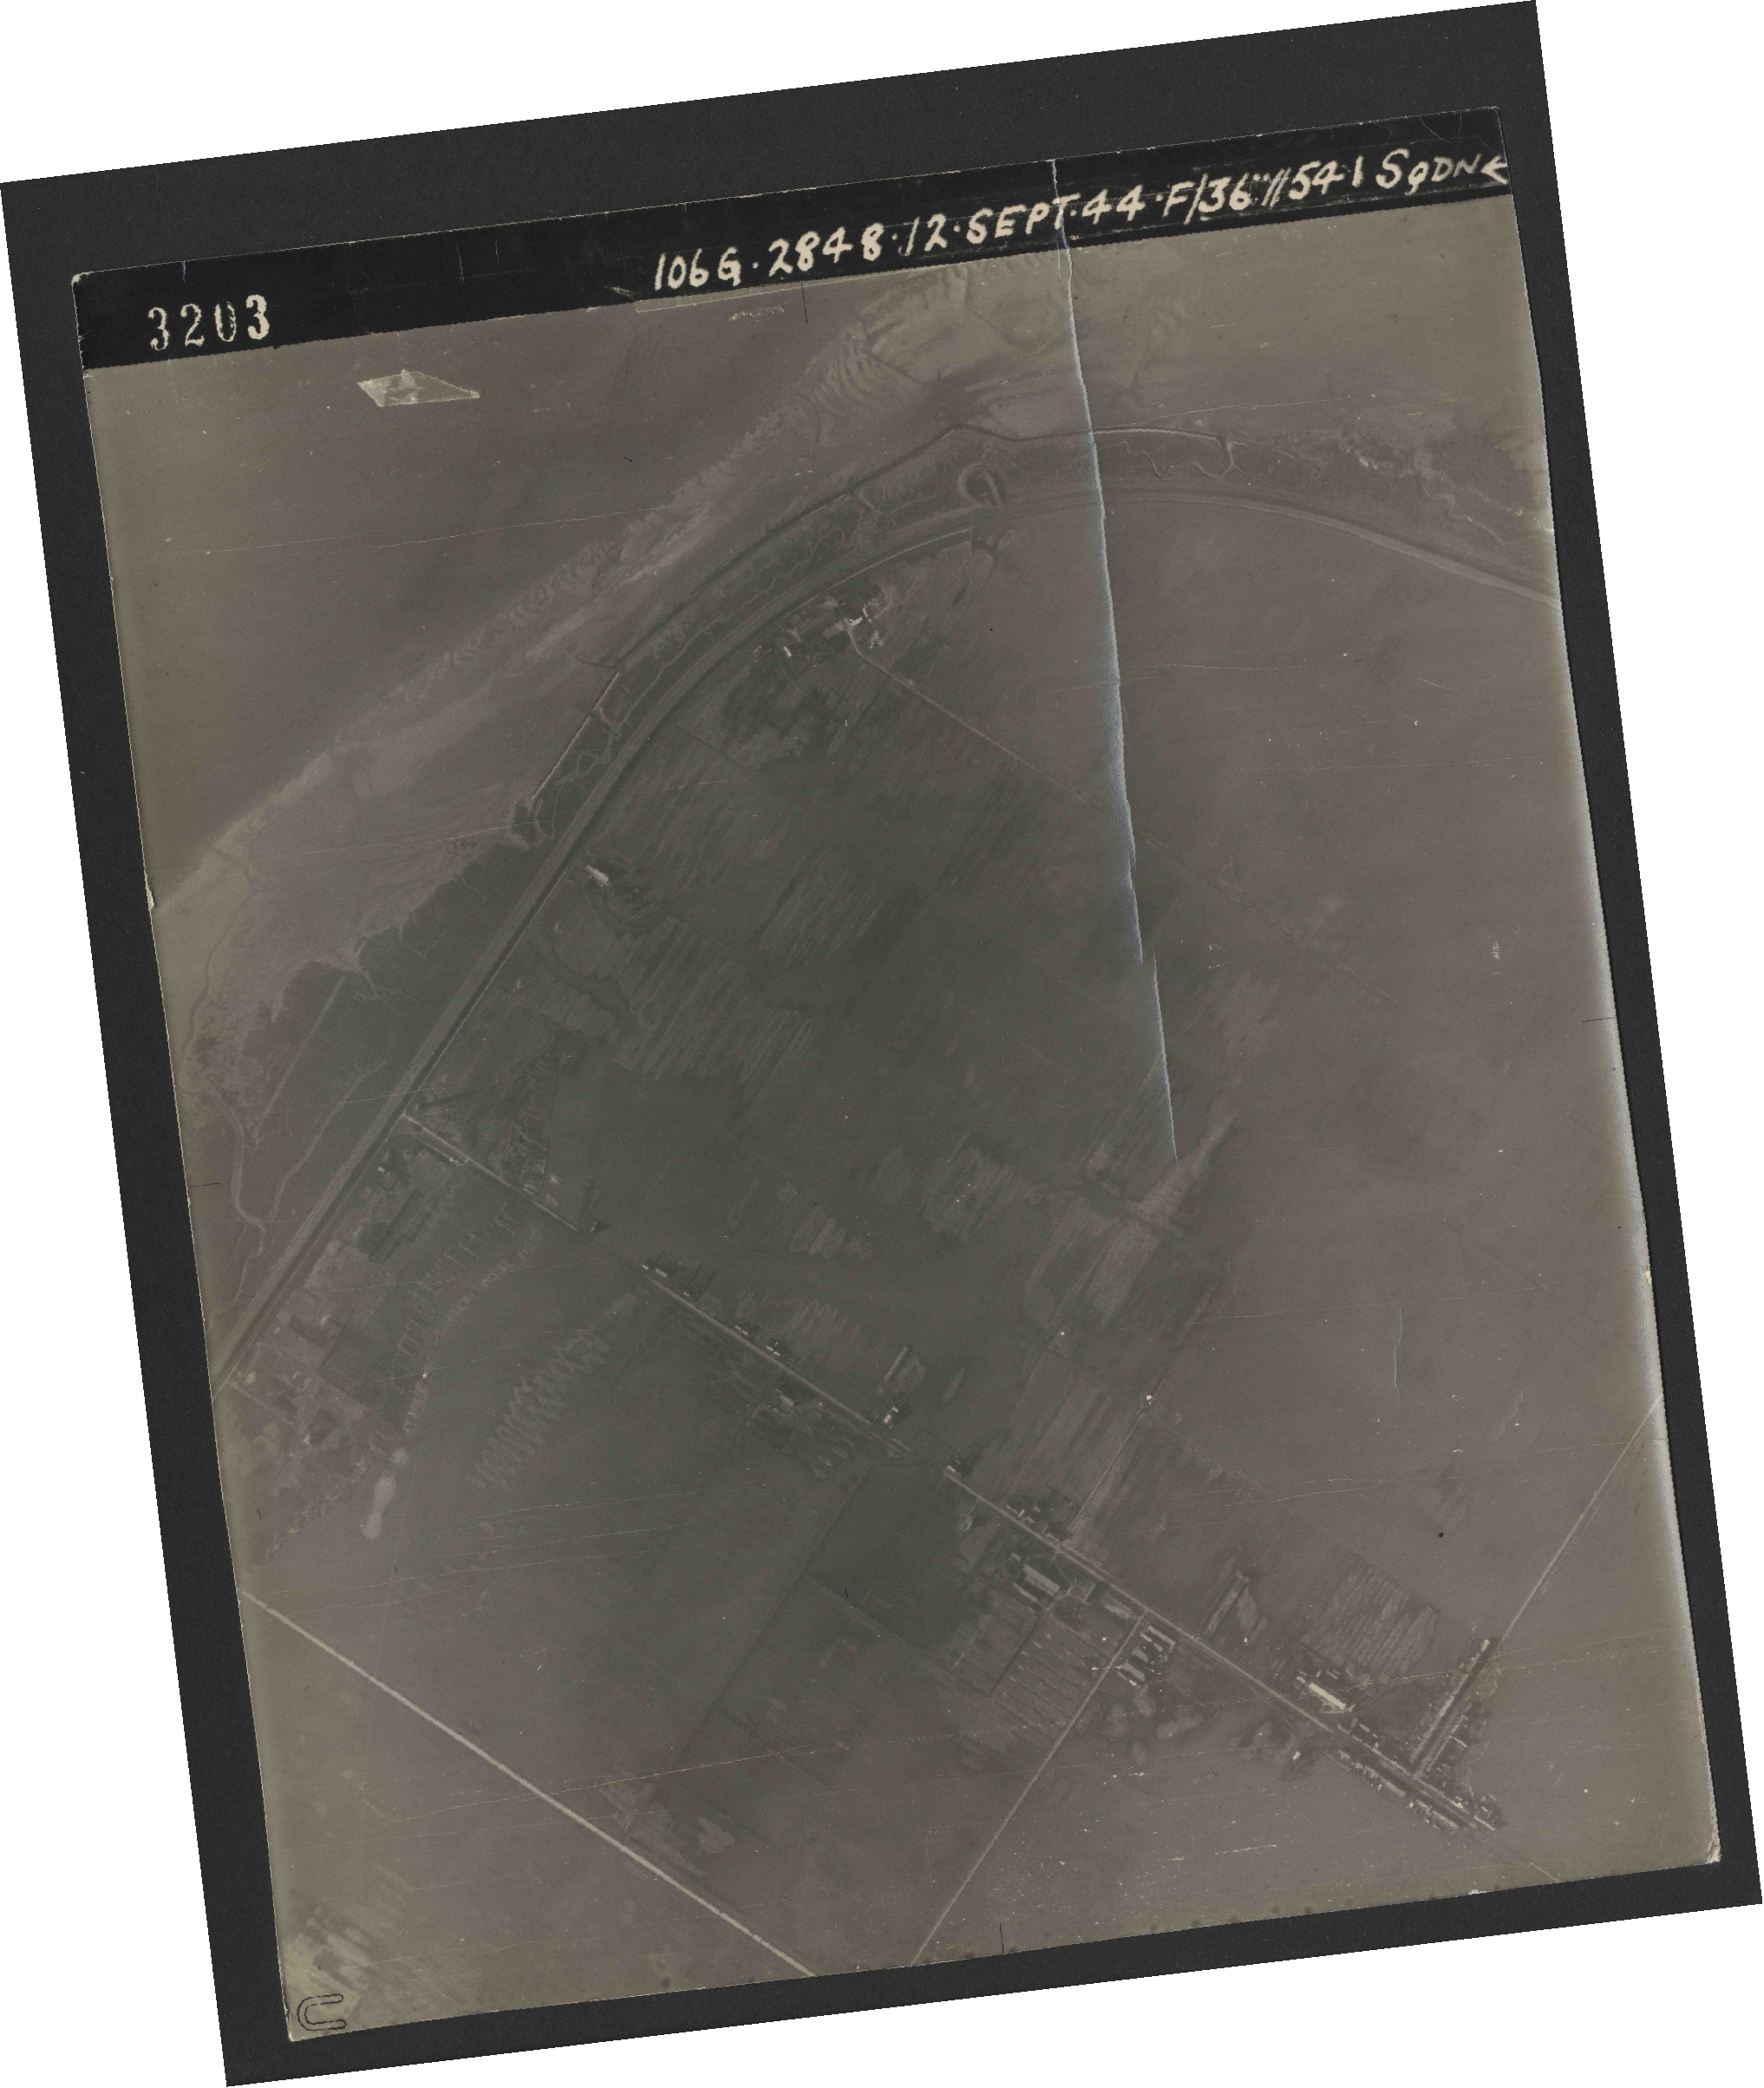 Collection RAF aerial photos 1940-1945 - flight 350, run 04, photo 3203